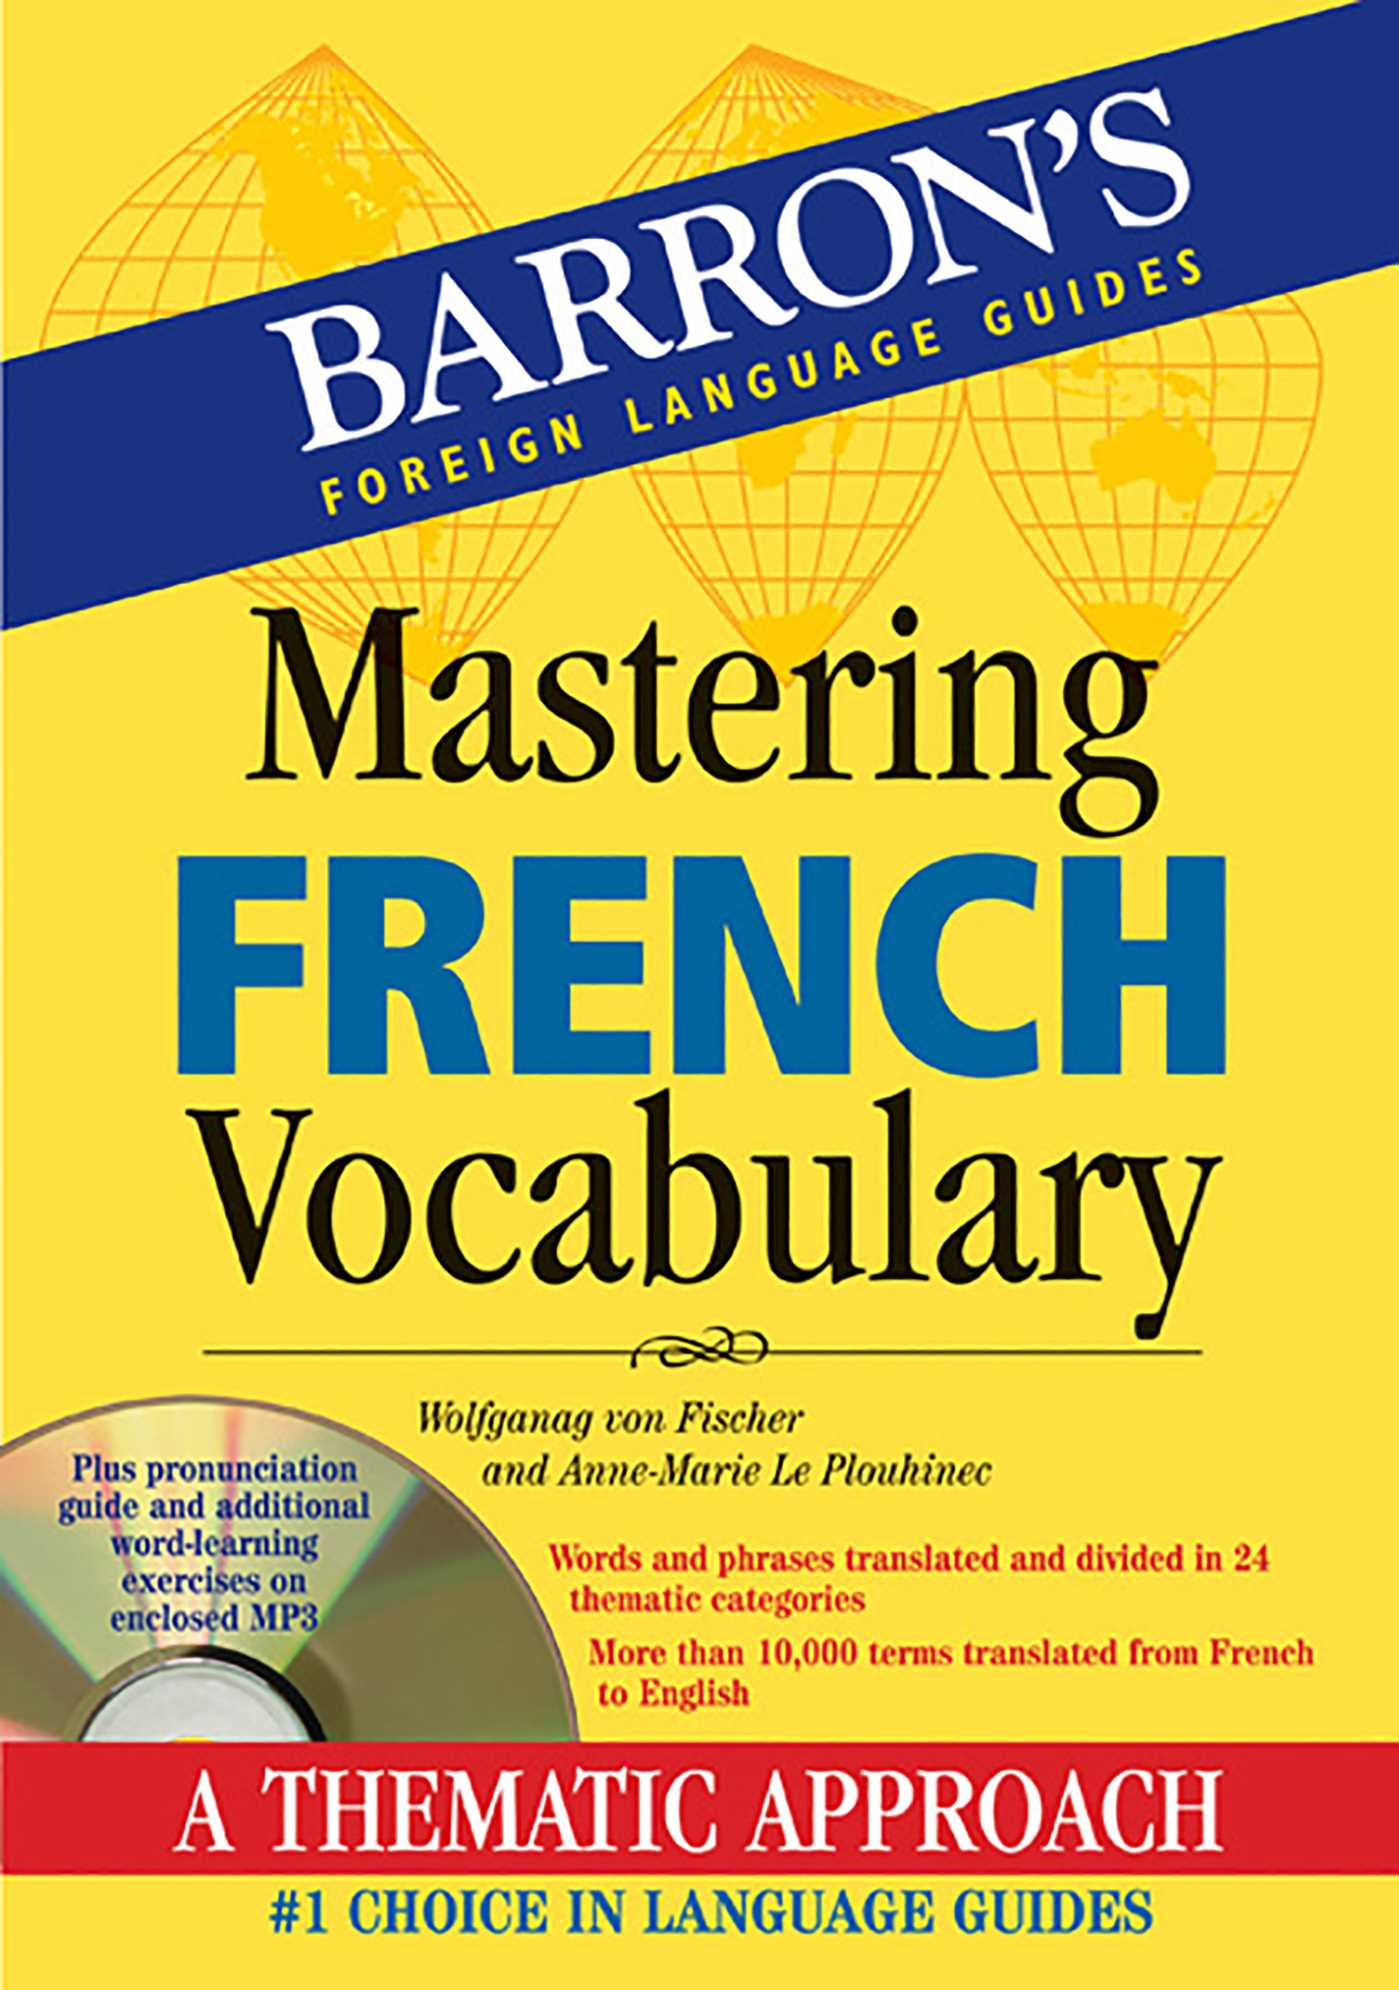 Mp3 Audio Mastering French Vocabulary With Audio Mp3 Book By Wolfgang